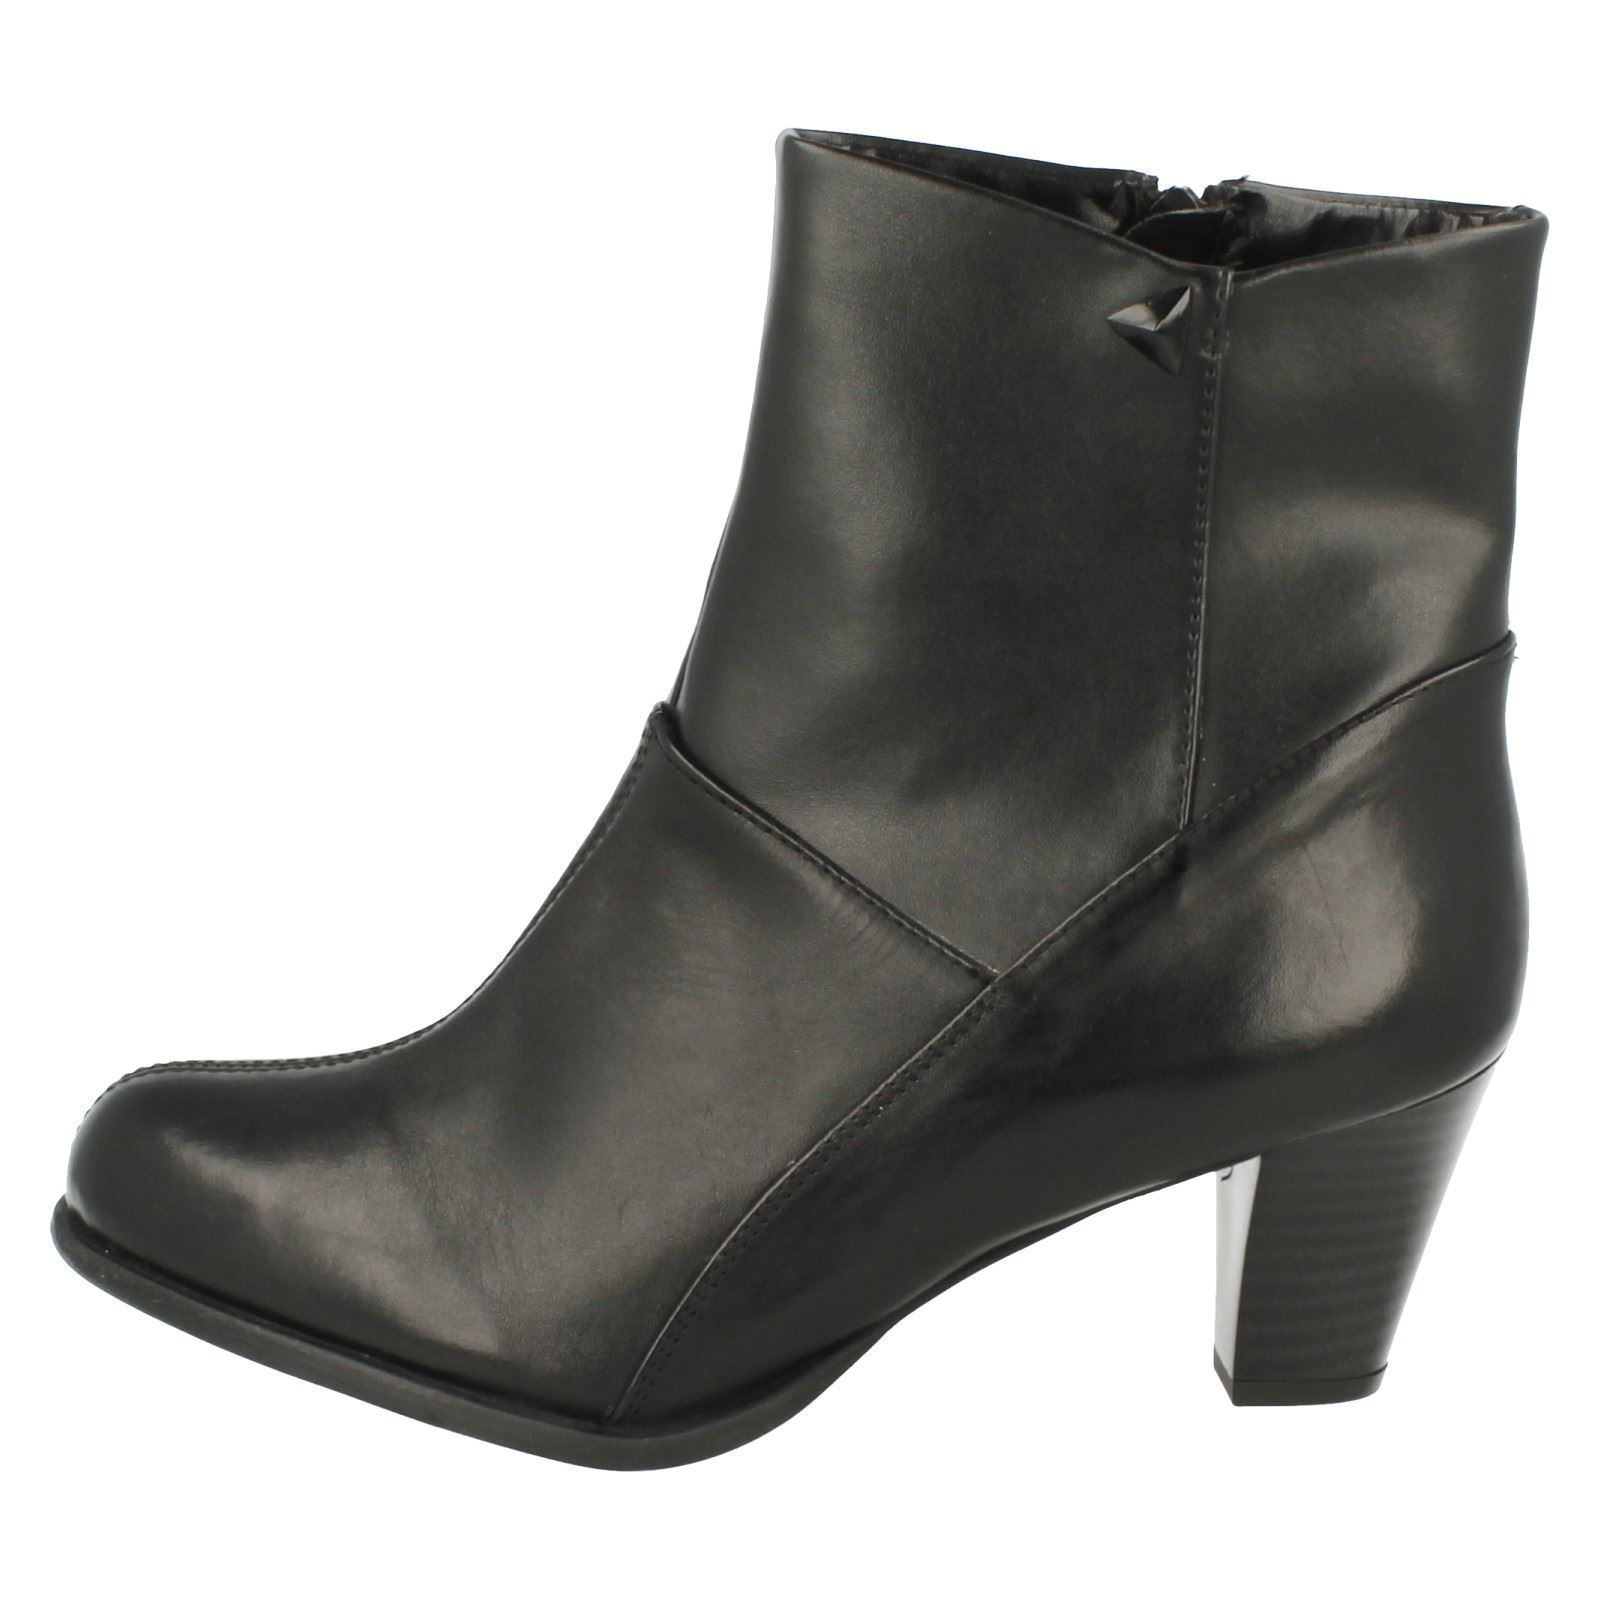 Ladies Clarks Leather Zip Smart Ankle Boots The Style - Lease Party